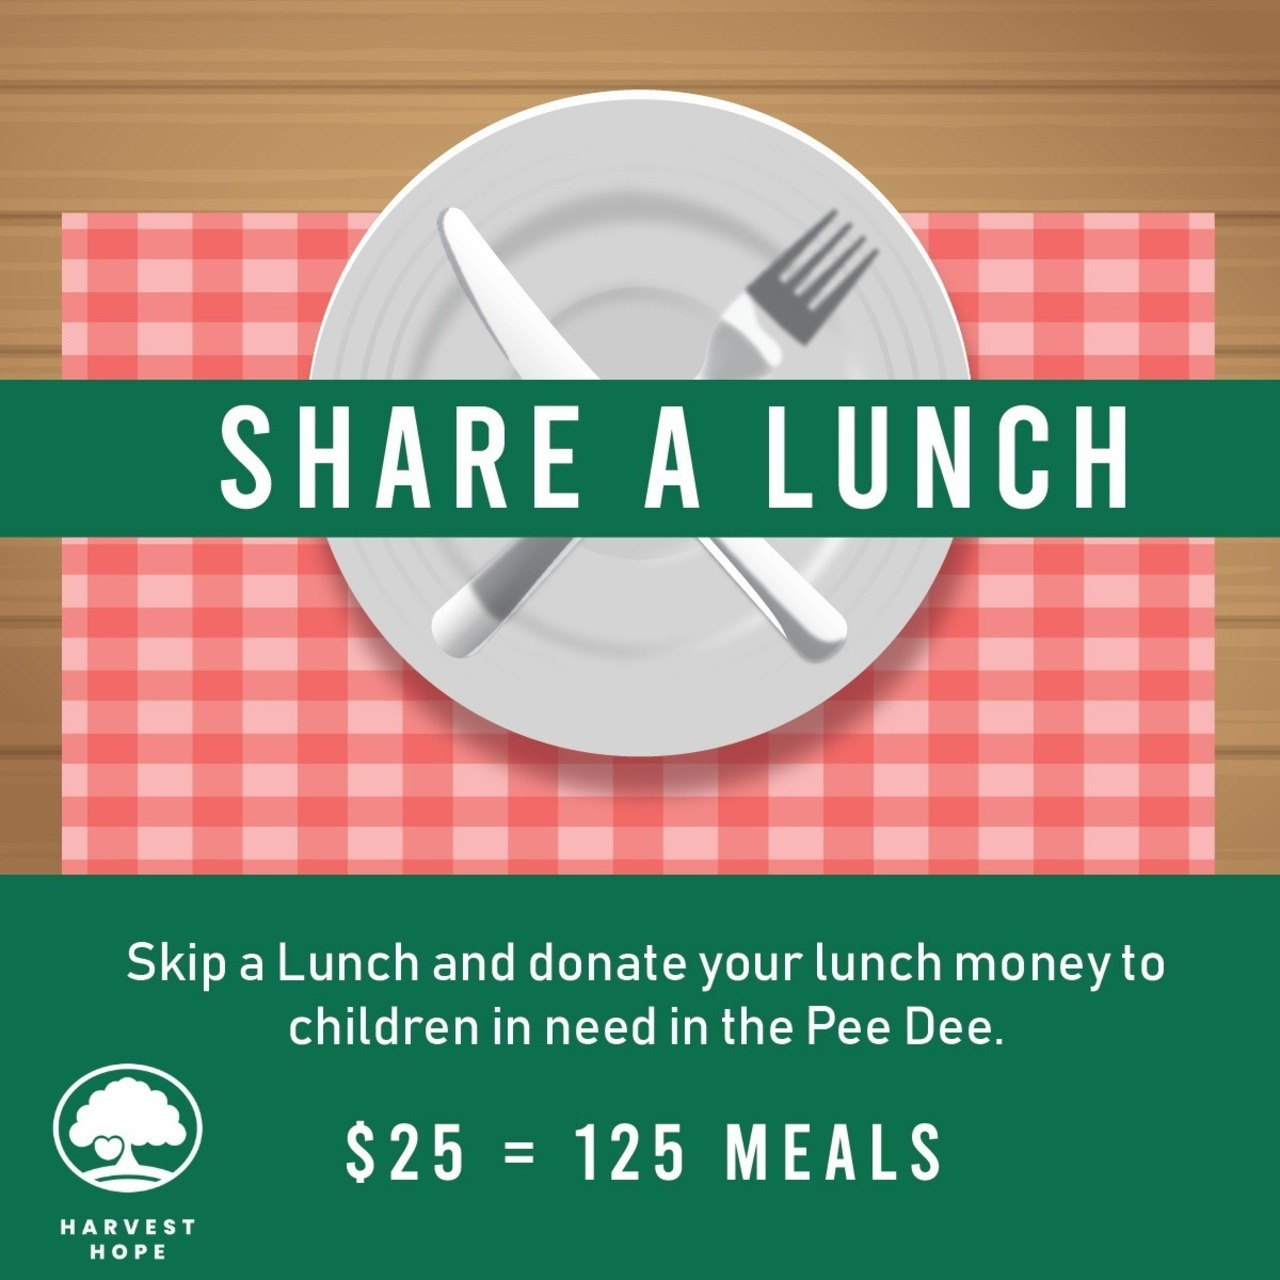 Adam Connelly's Share a Lunch Fundraiser for Harvest Hope